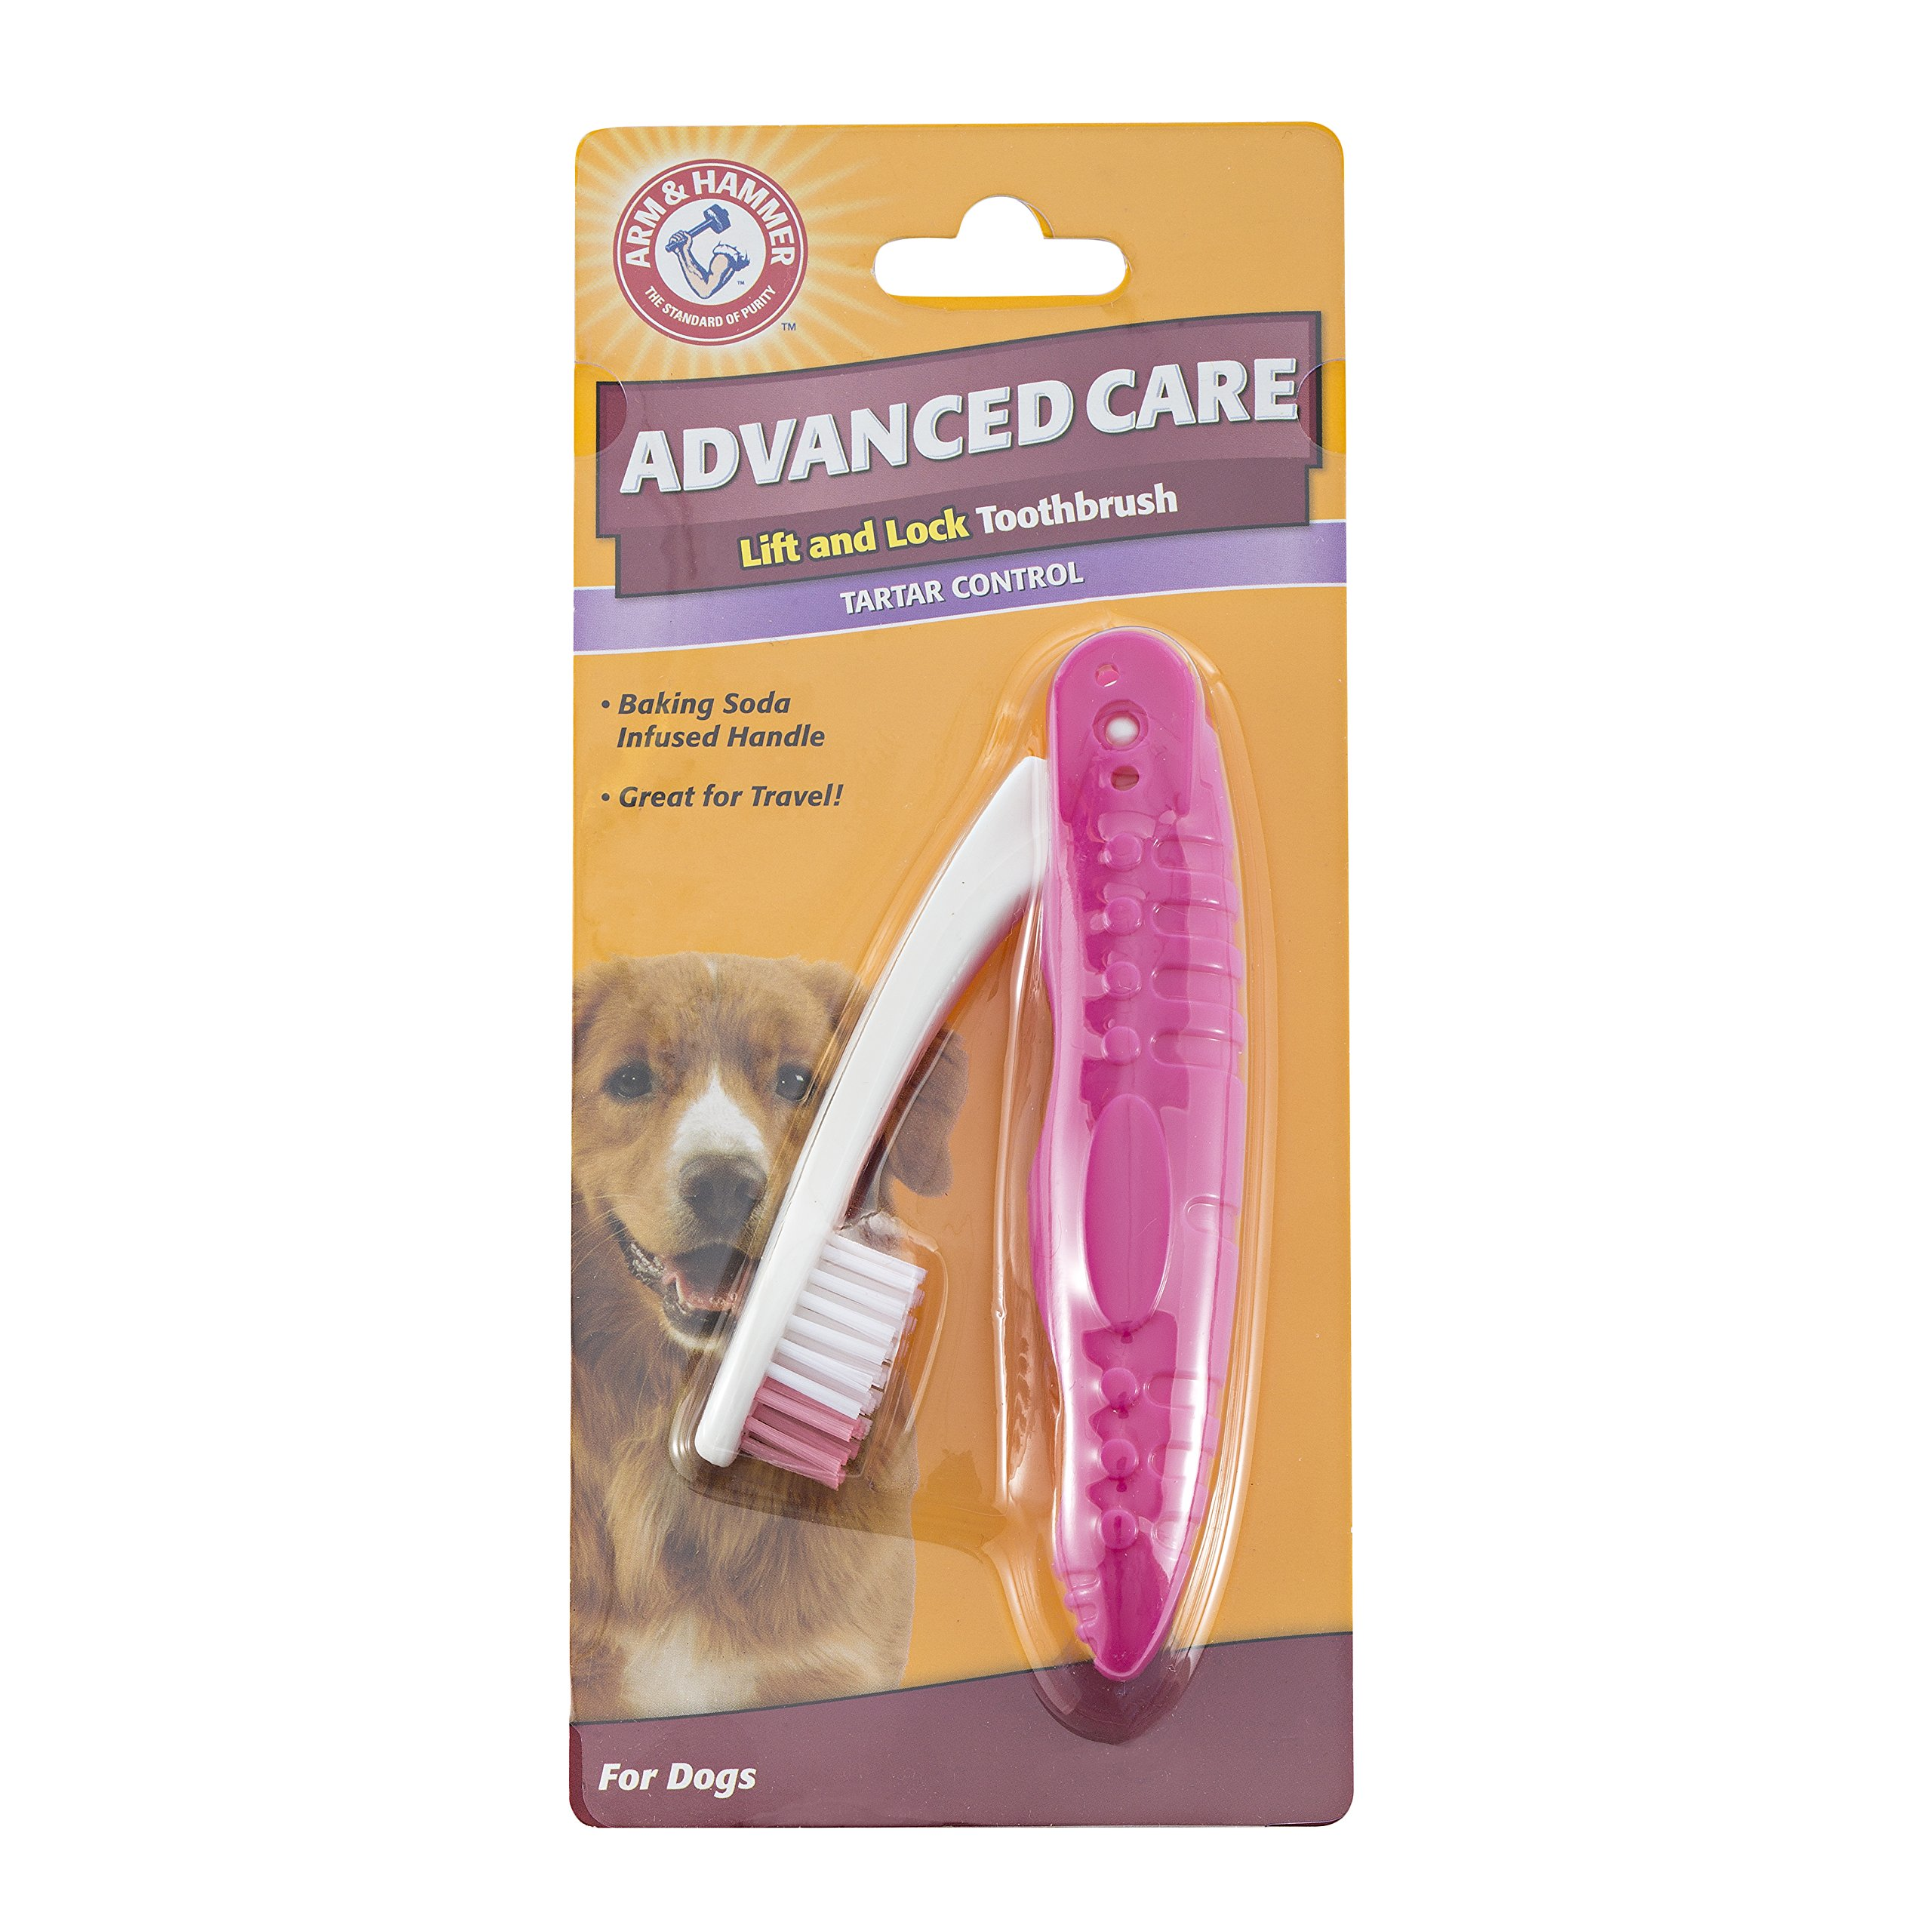 Arm & Hammer Dog Dental Care Lift and Lock Toothbrush for Dogs